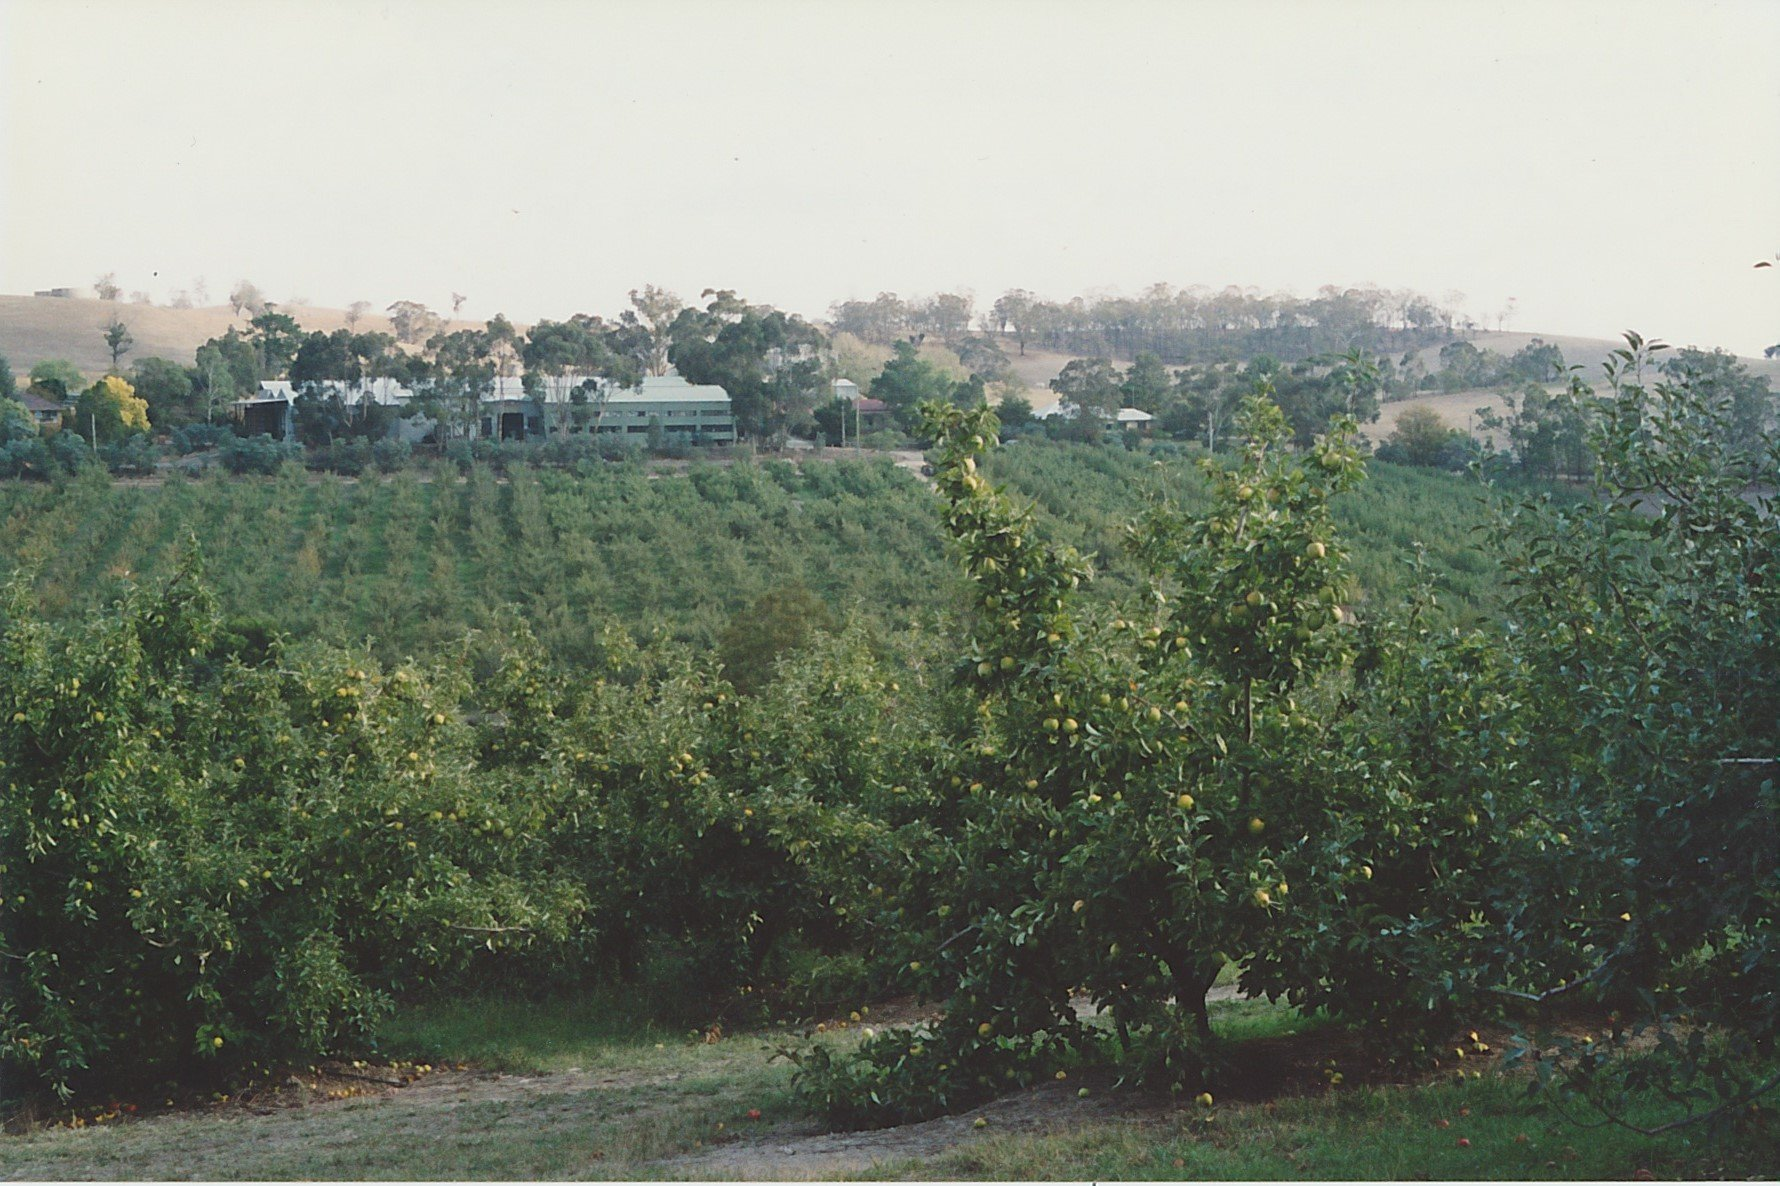 'Glen Ard' orchards and coolstores.  Granny Smith and Jonathan apple trees in the foreground.  Bruce G. Draper, November 2003